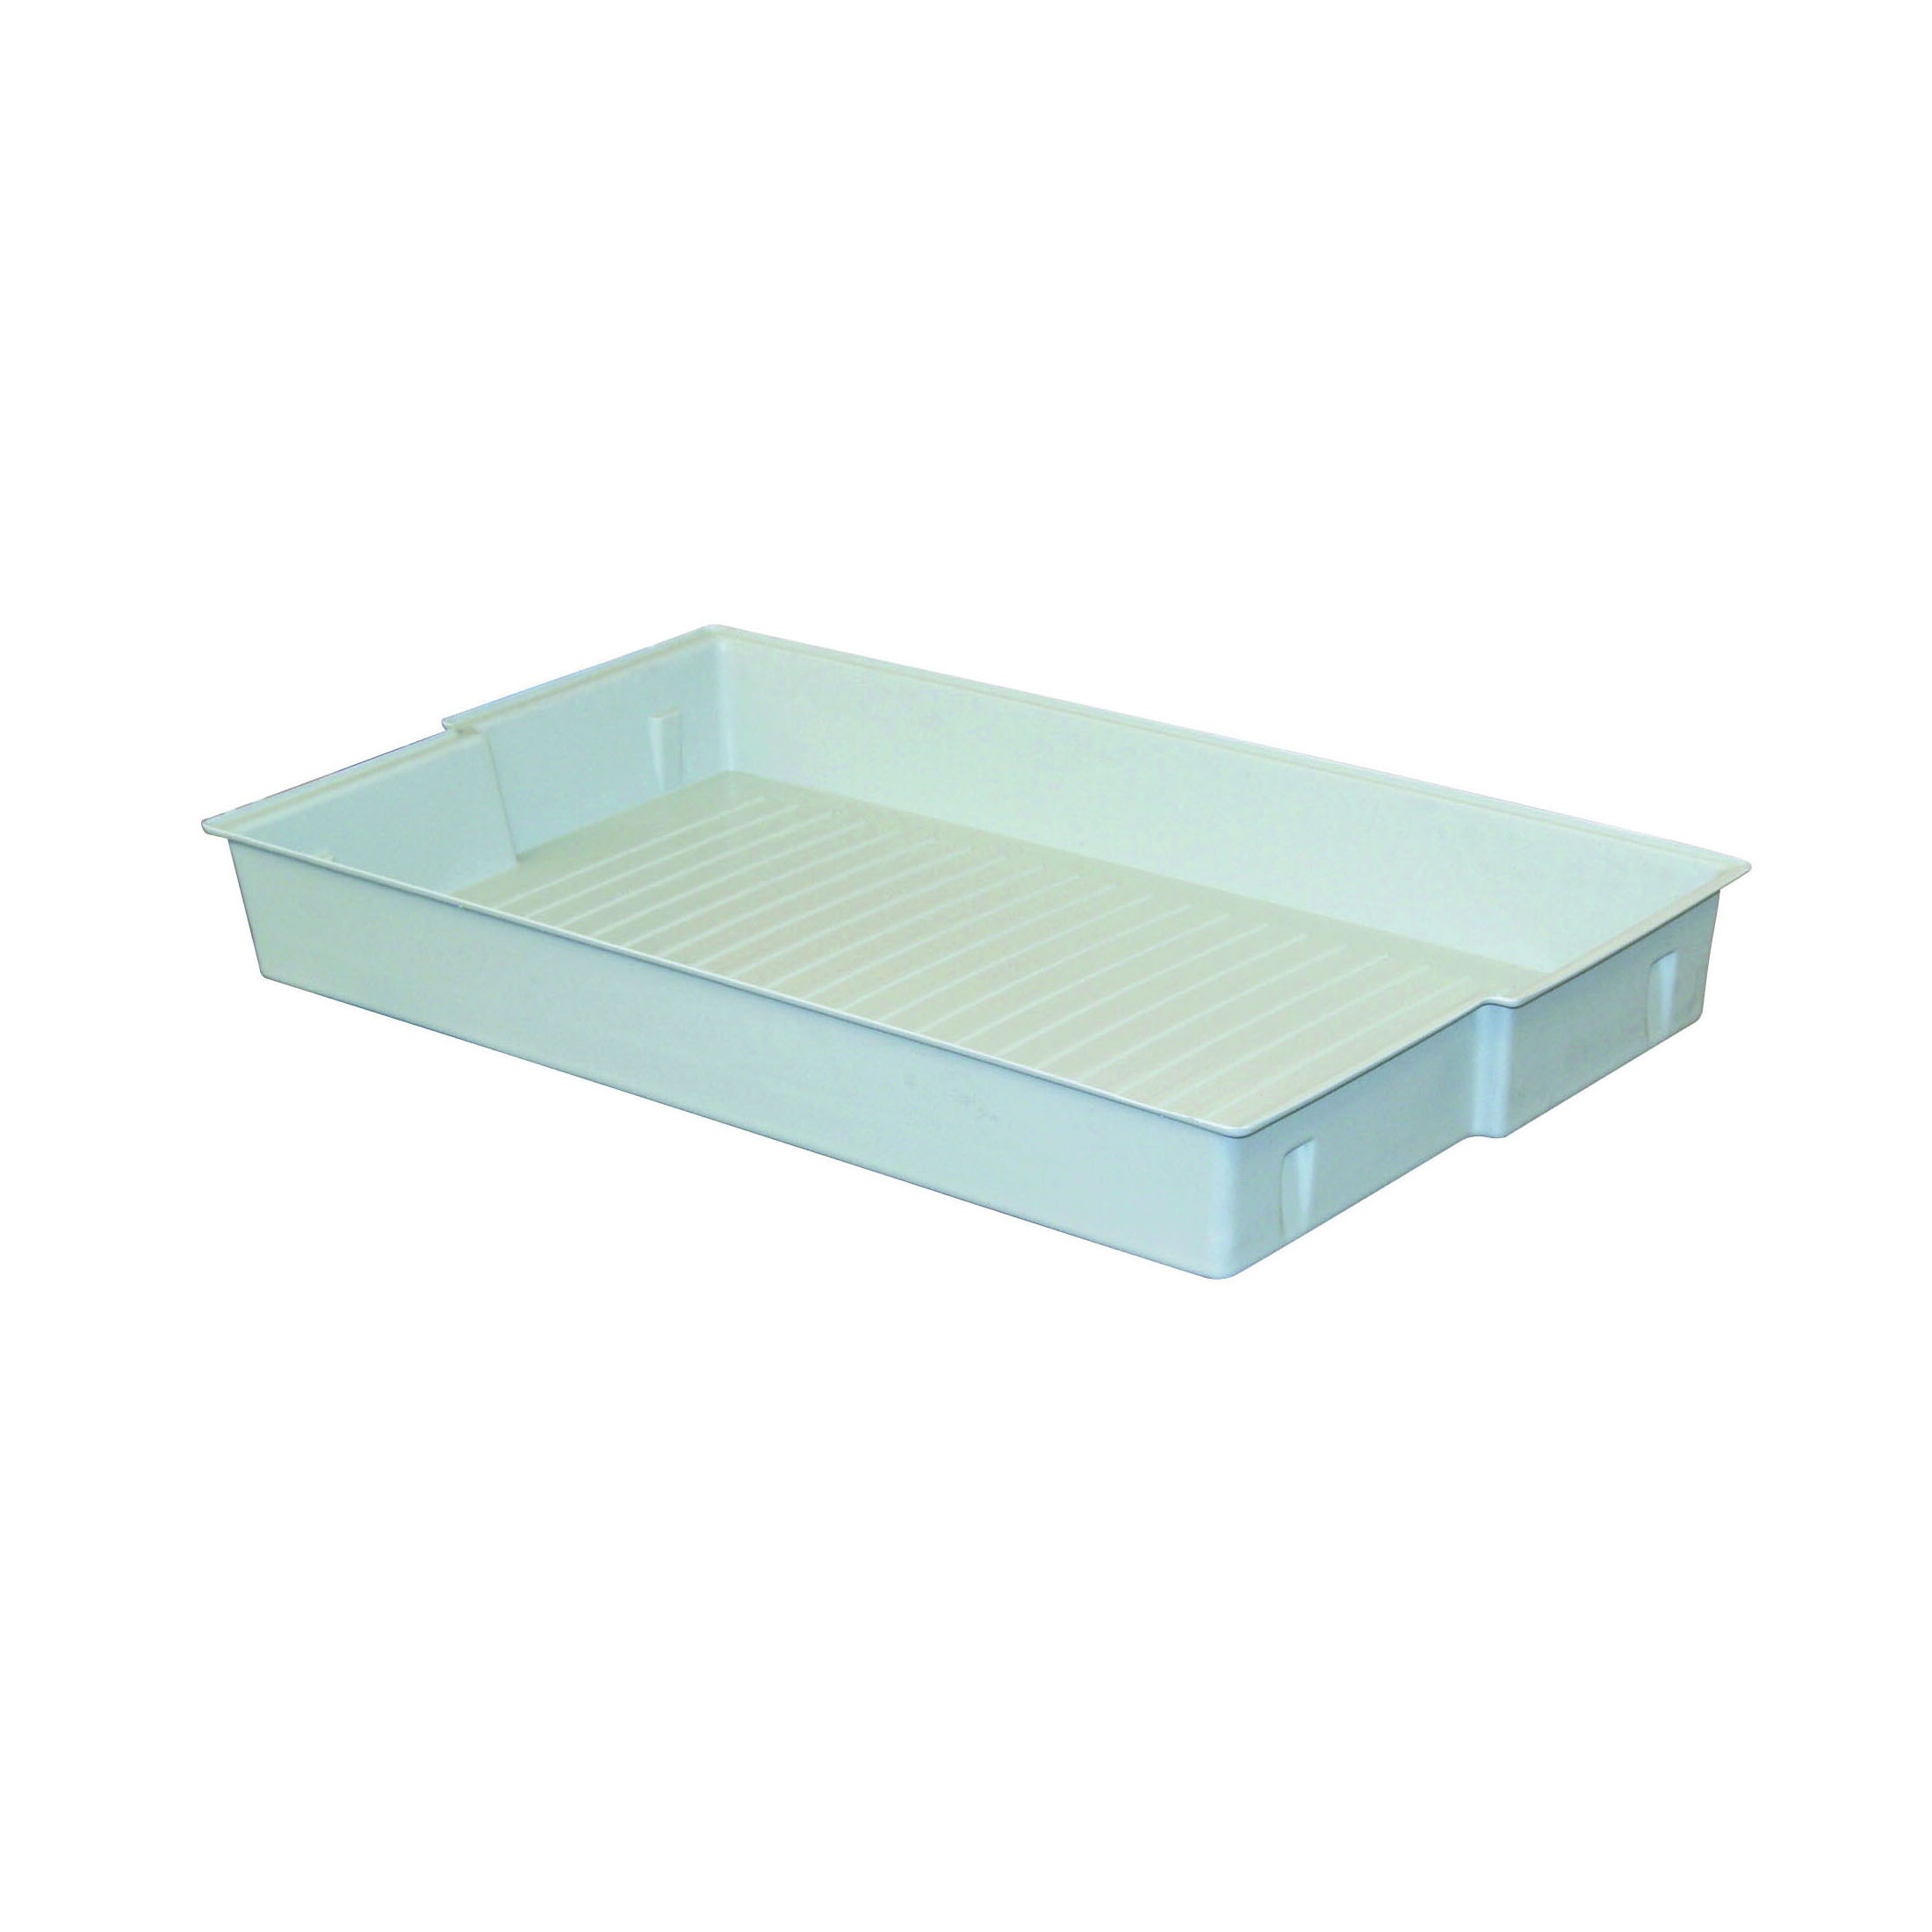 Justrite® 22632 Tray, For Use With 22630 30 gal 30 min/90 min Safety Cabinet, Gray